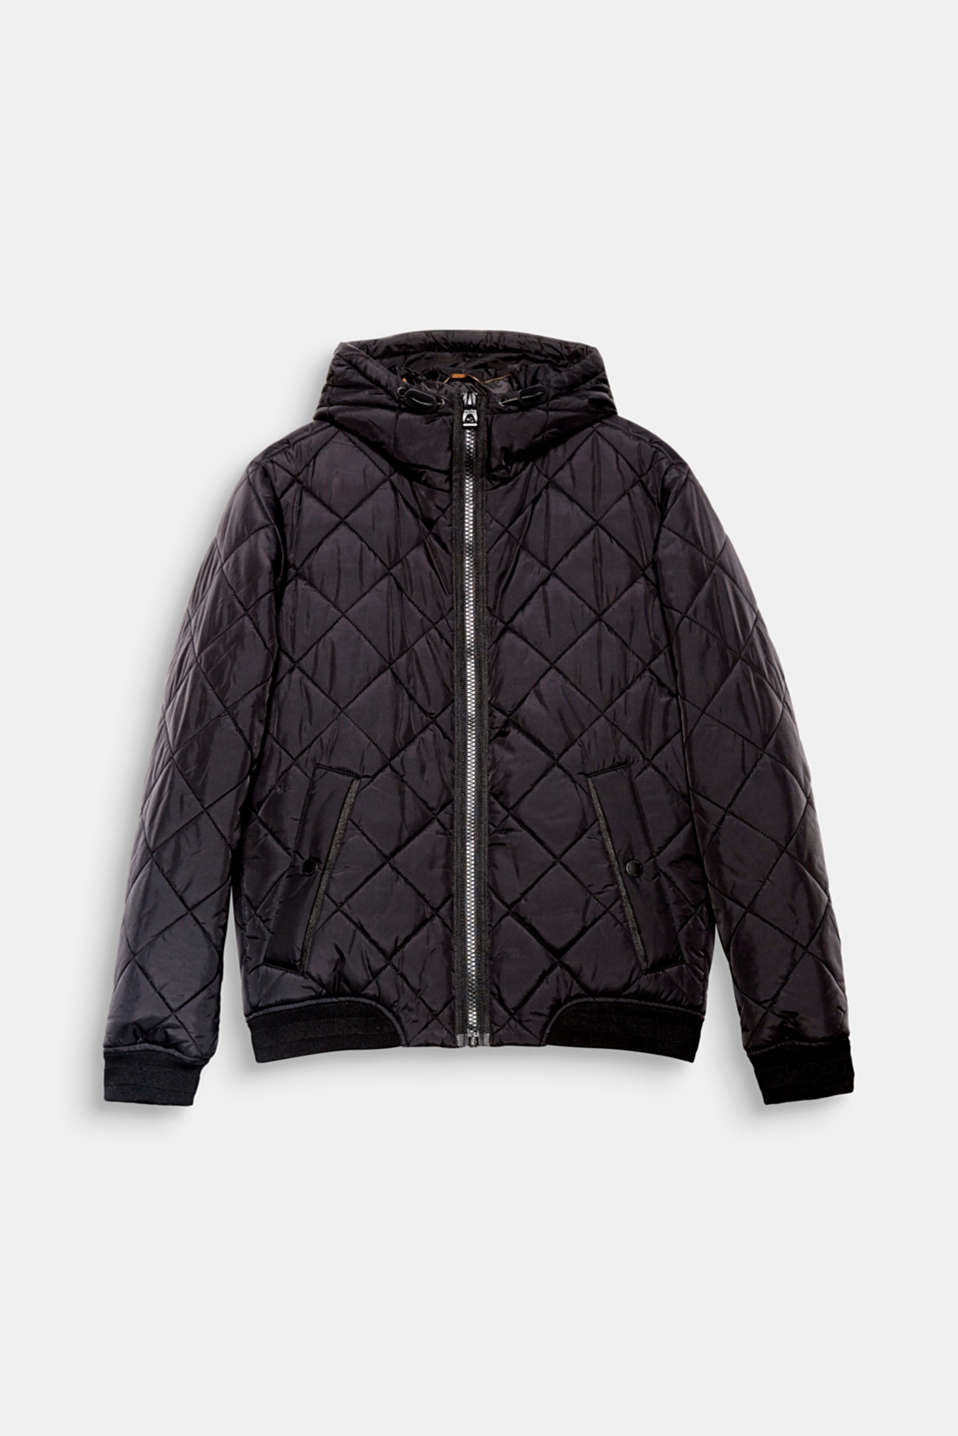 The trendy bomber cut and distinctive diamond quilting make this quilted jacket a fashion piece for your autumn look.